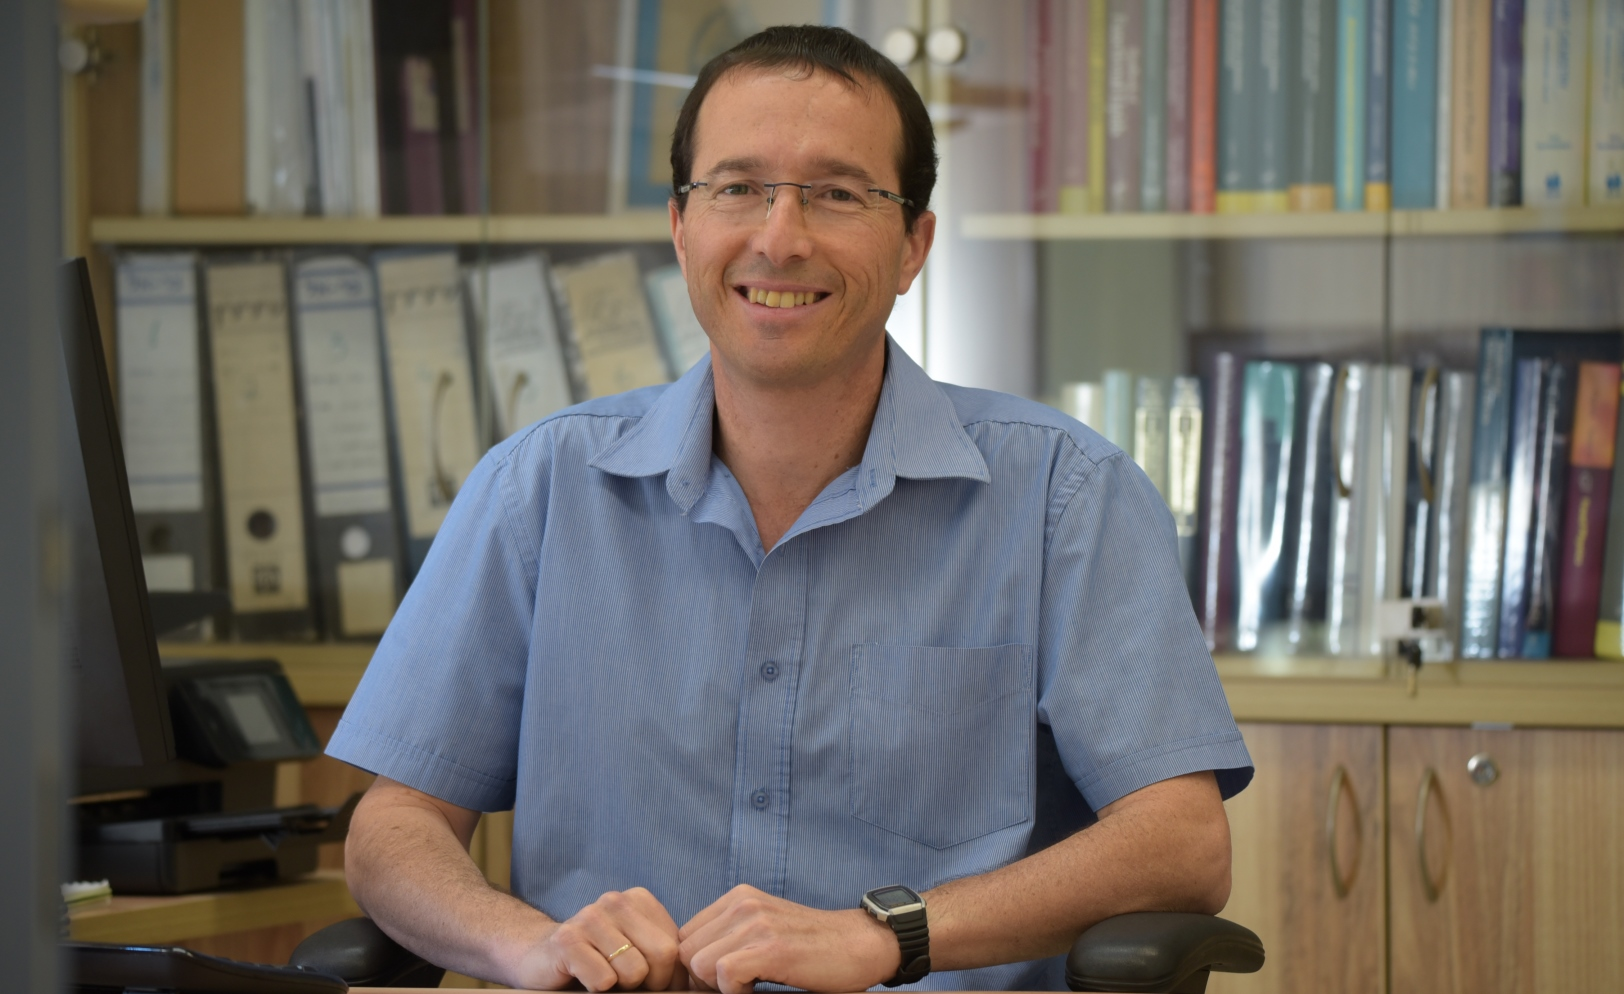 Prof. Yoav Livney of the Technion's Faculty of Biotechnology Engineering. Photo: courtesy